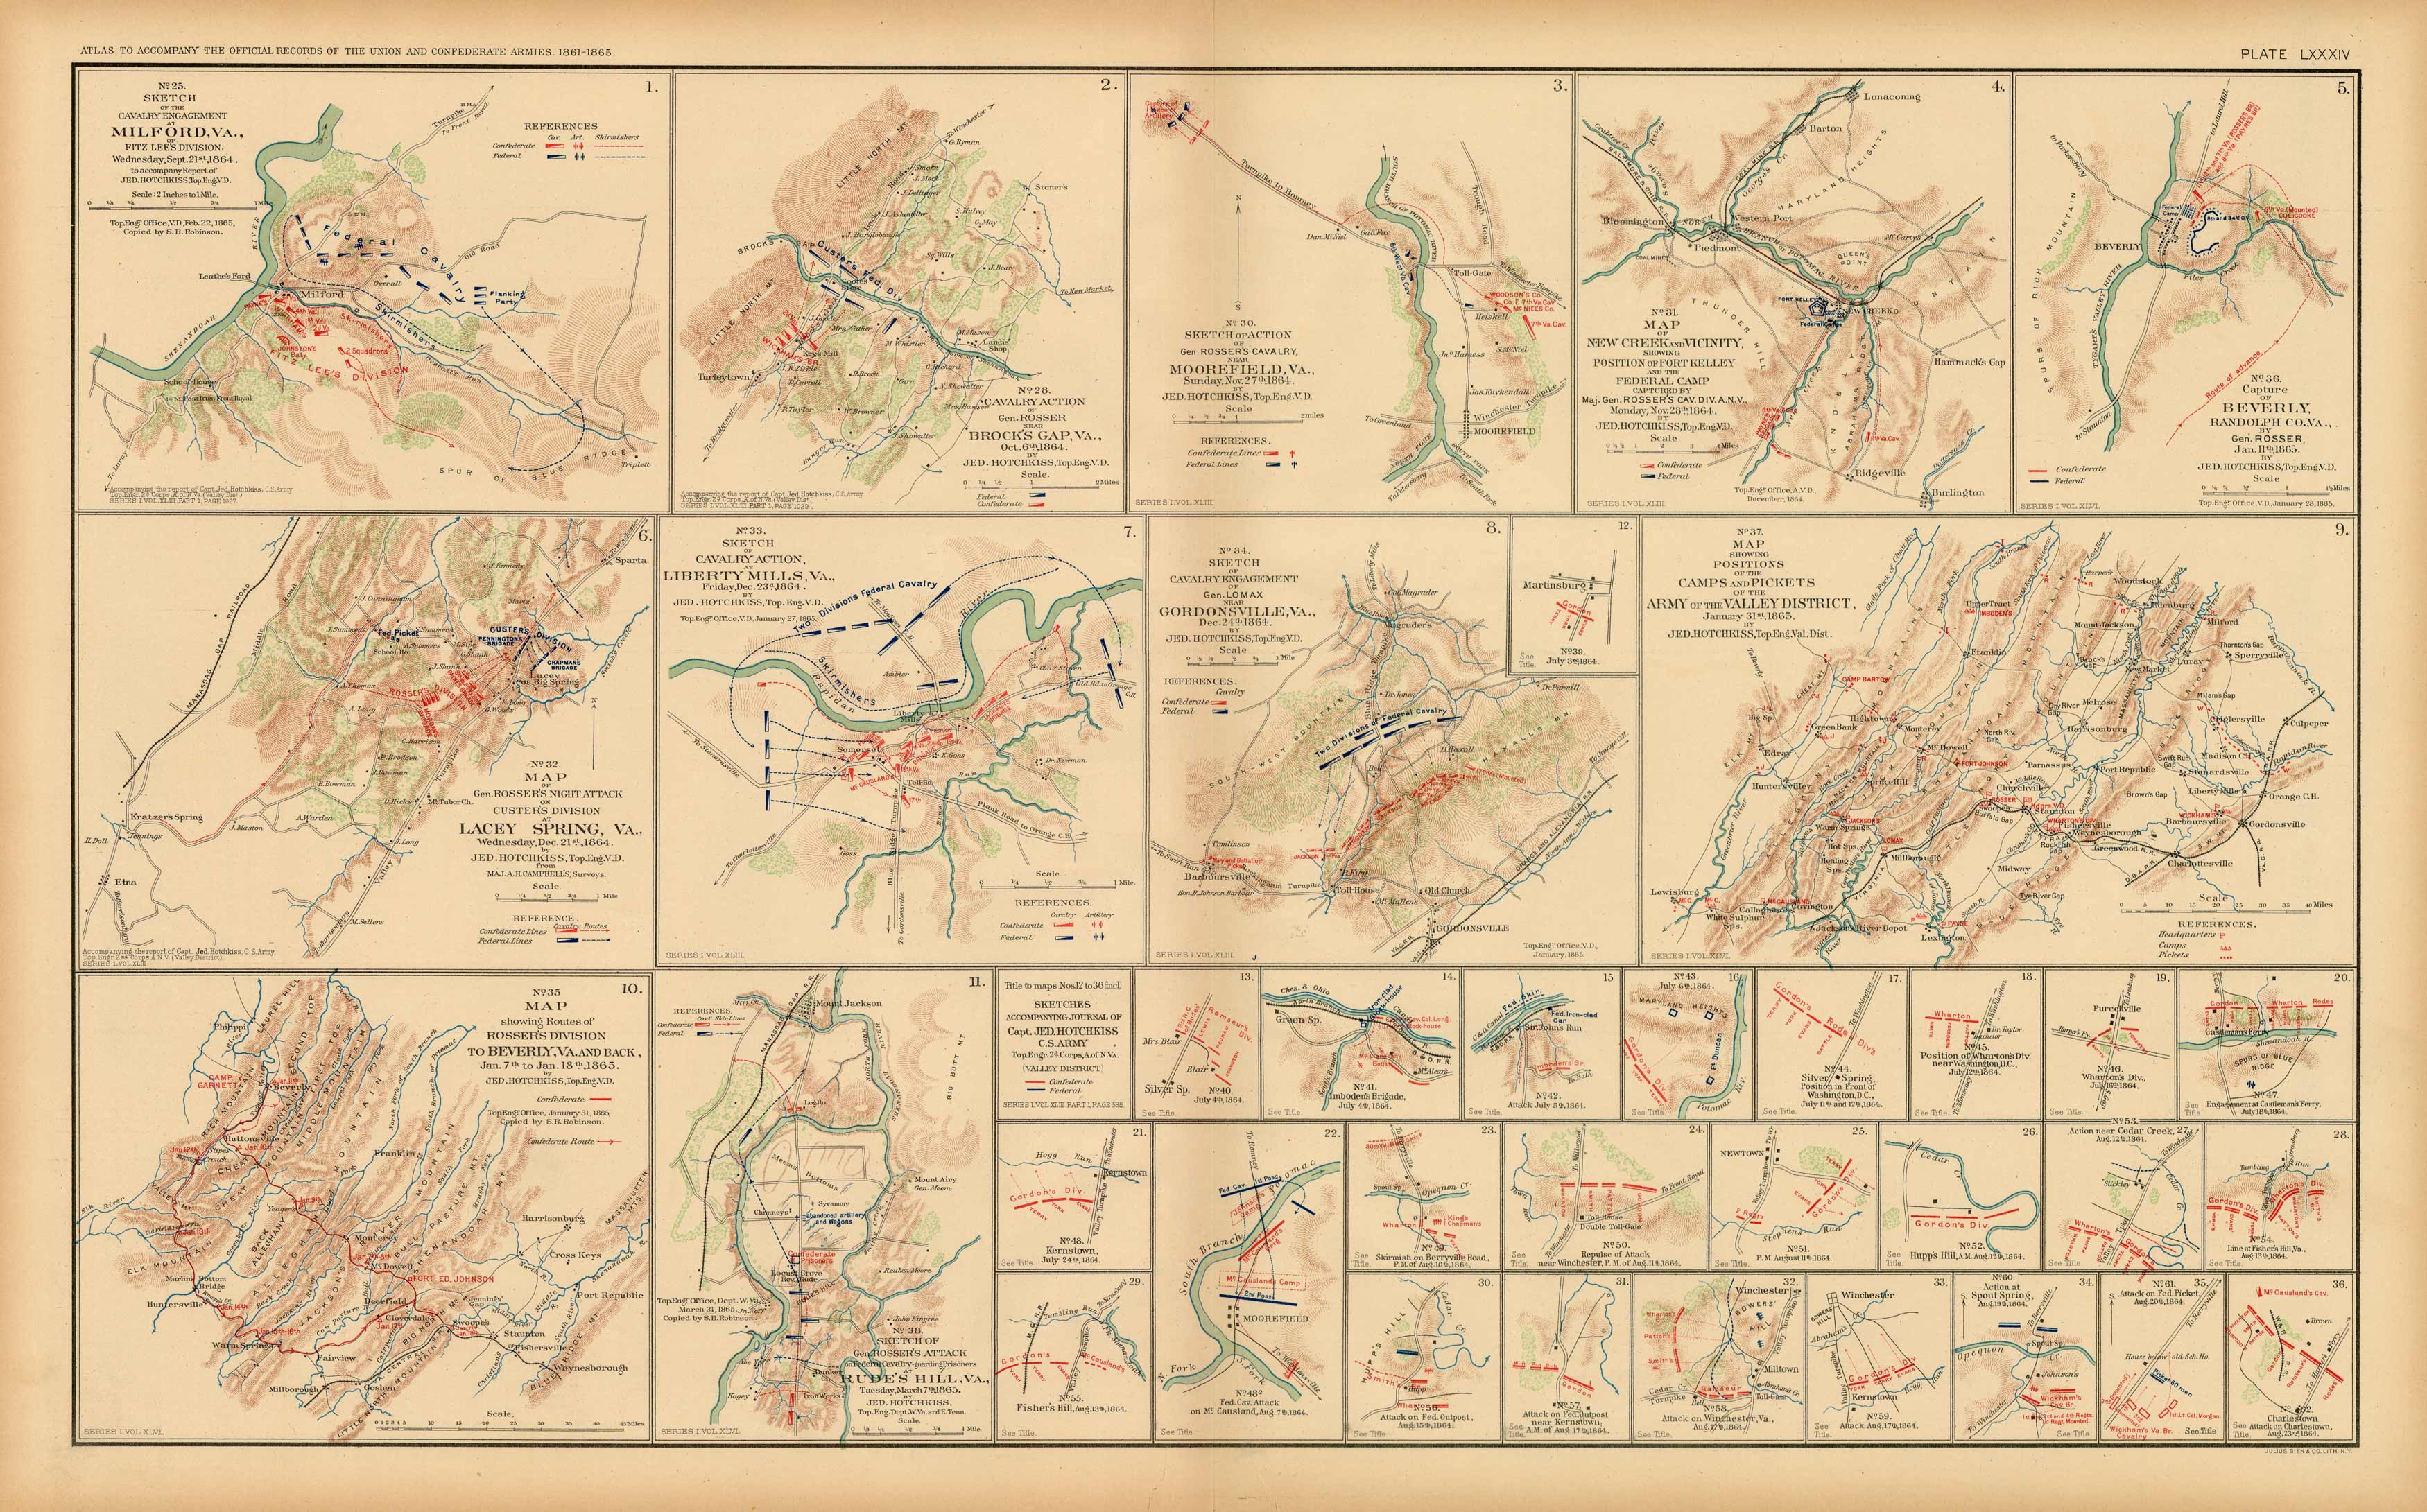 Civil War Atlas; Plate 84; Sketch of Cavalry Engagement at Milford